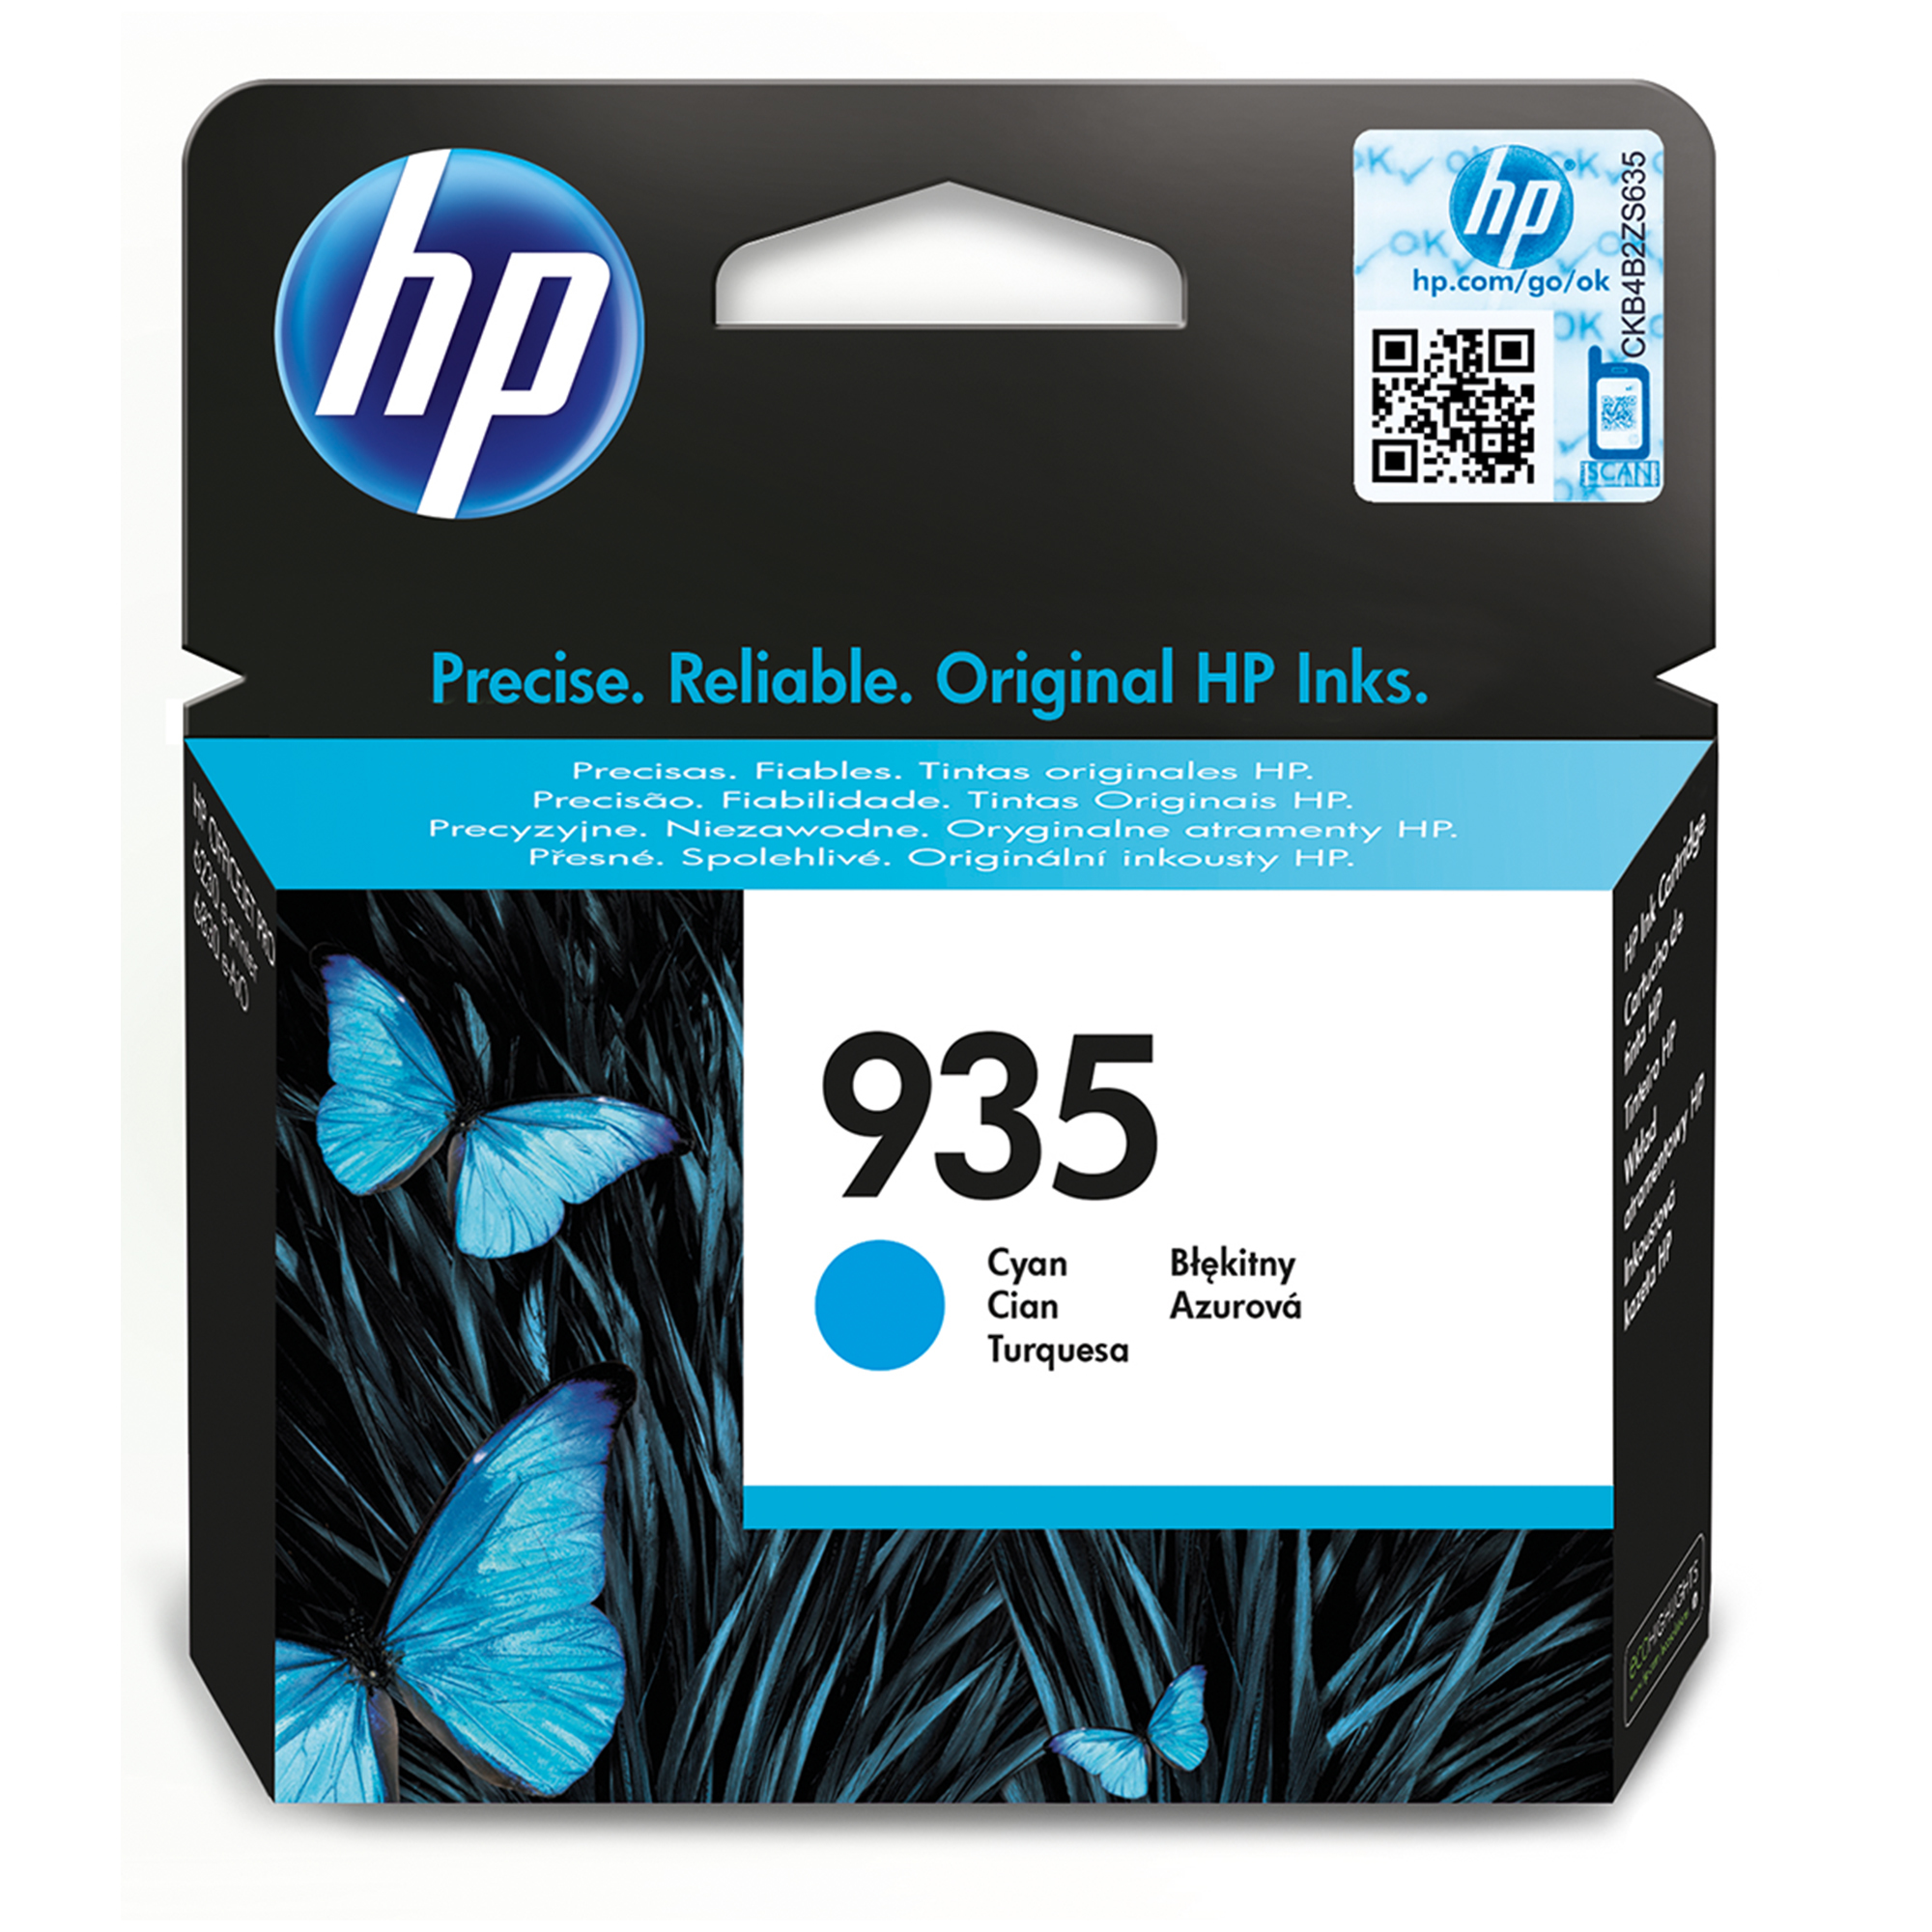 HP 935 - C2P20AE - 1 X Cyan - Ink Cartridge - For Officejet 6812, 6815, Officejet Pro 6230, 6230 EPrinter, 6830, 6835 C2P20AE#BGX - C2000